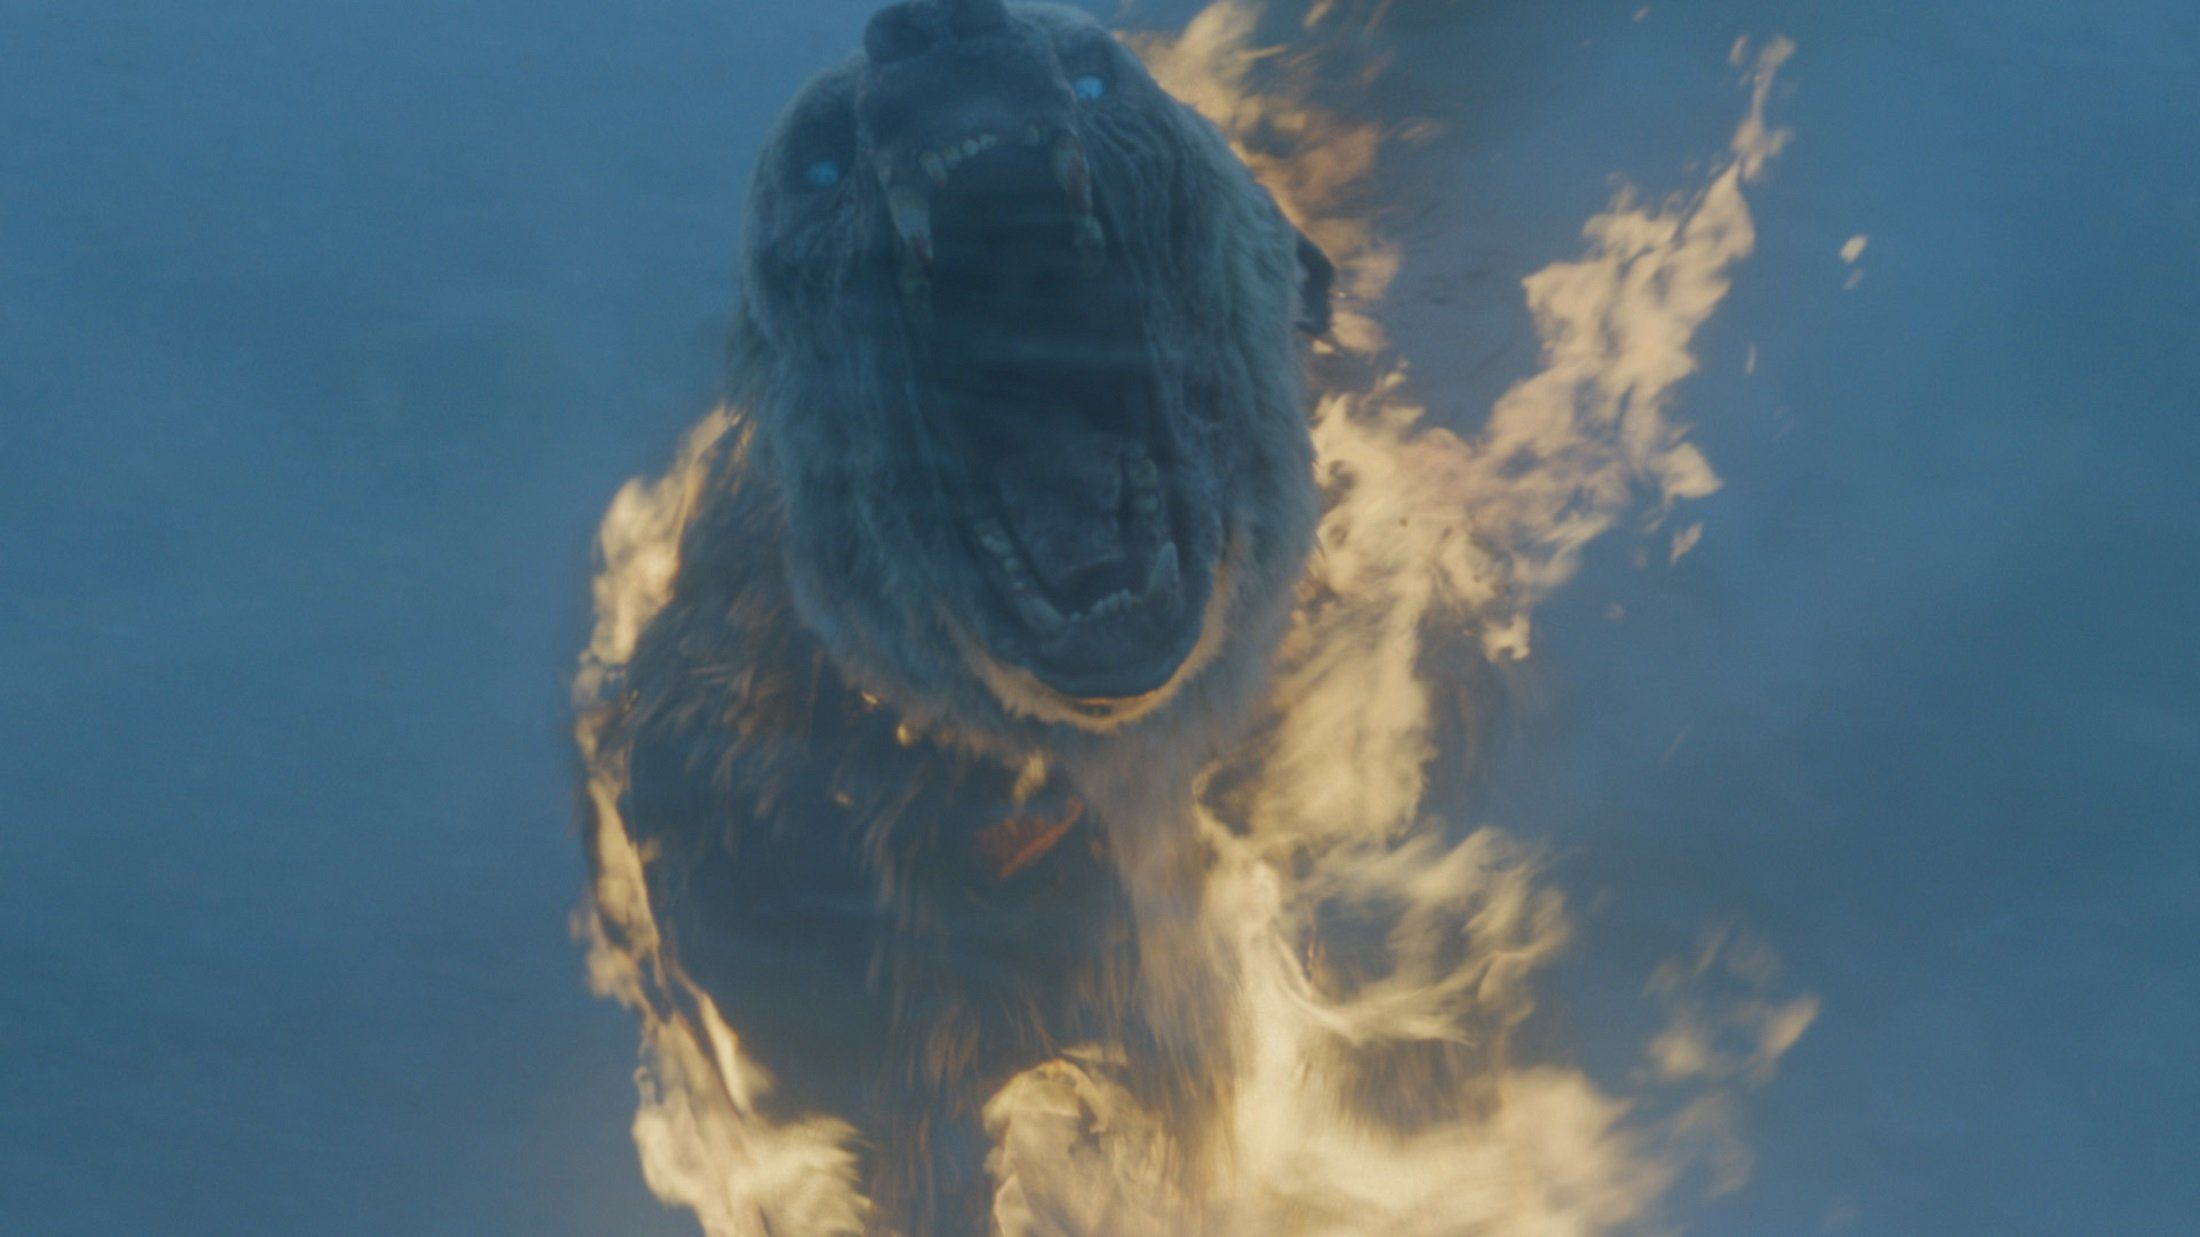 Loved The Game Of Thrones Showdown Between Dragons & White Walkers? Here's How It Was Created